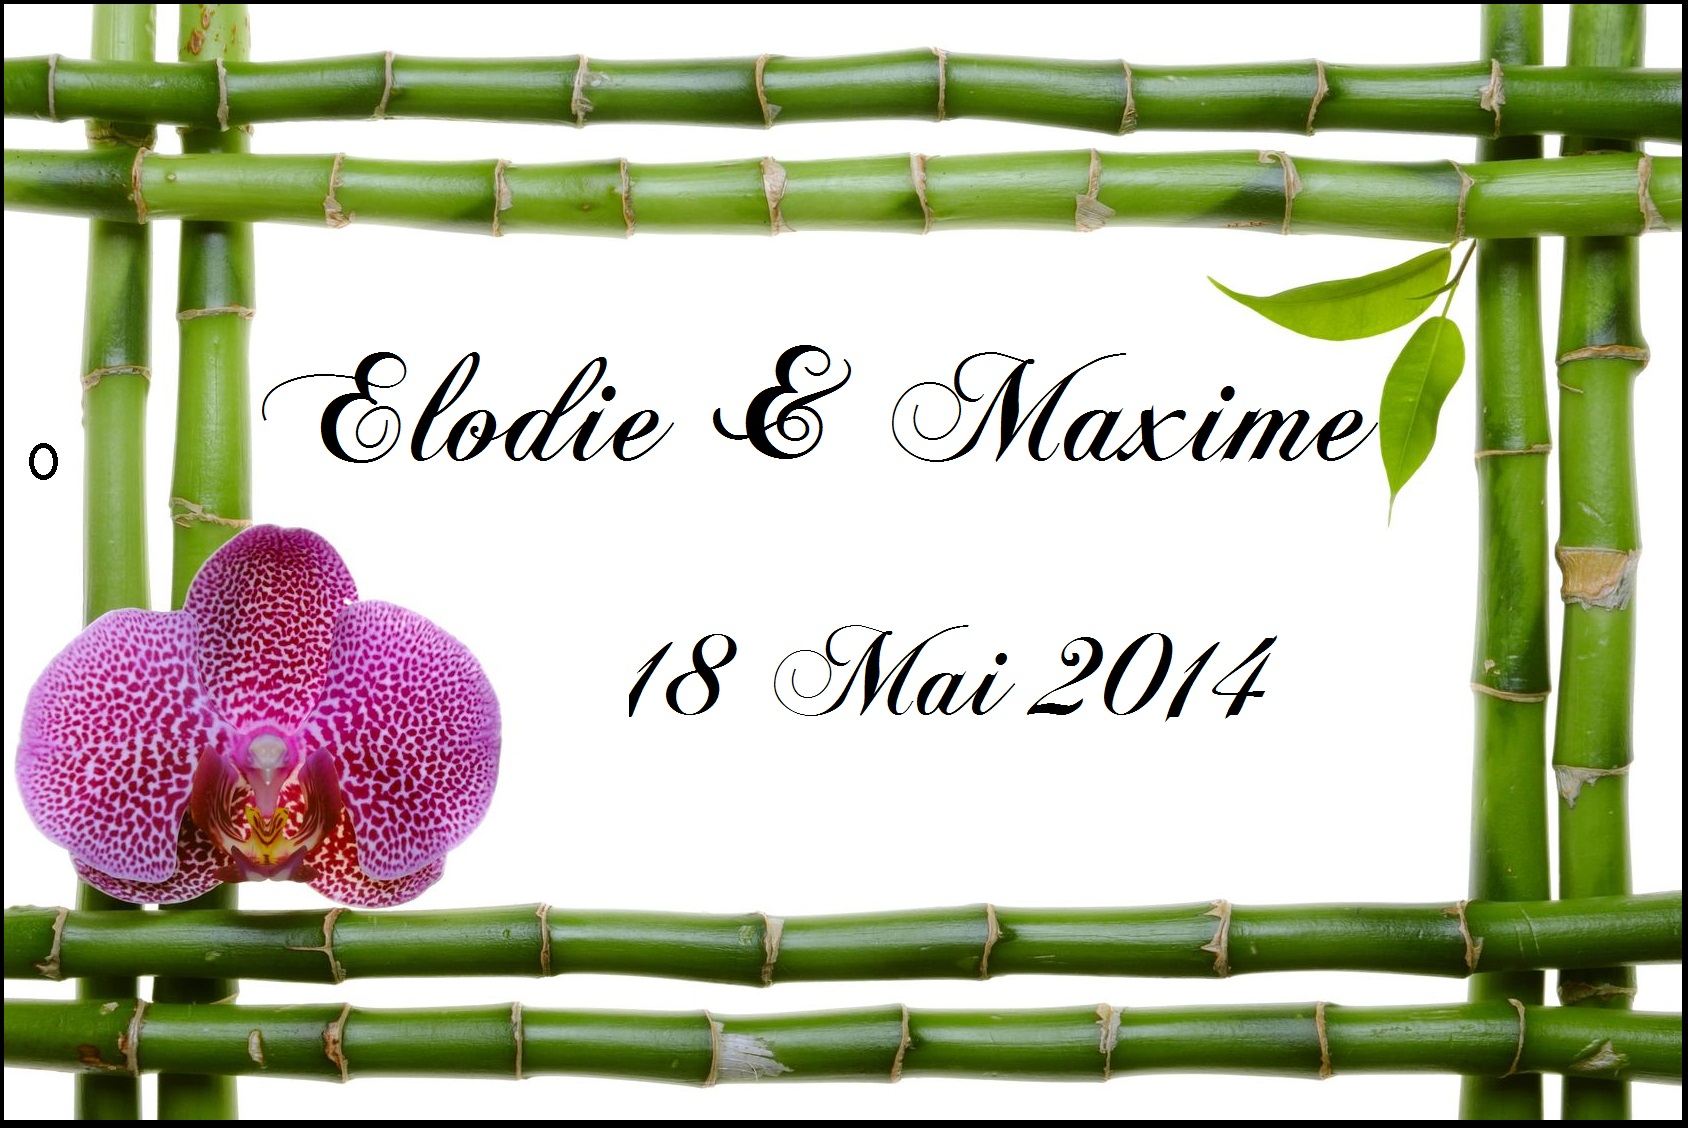 Etiquette a dragee bambou orchidee